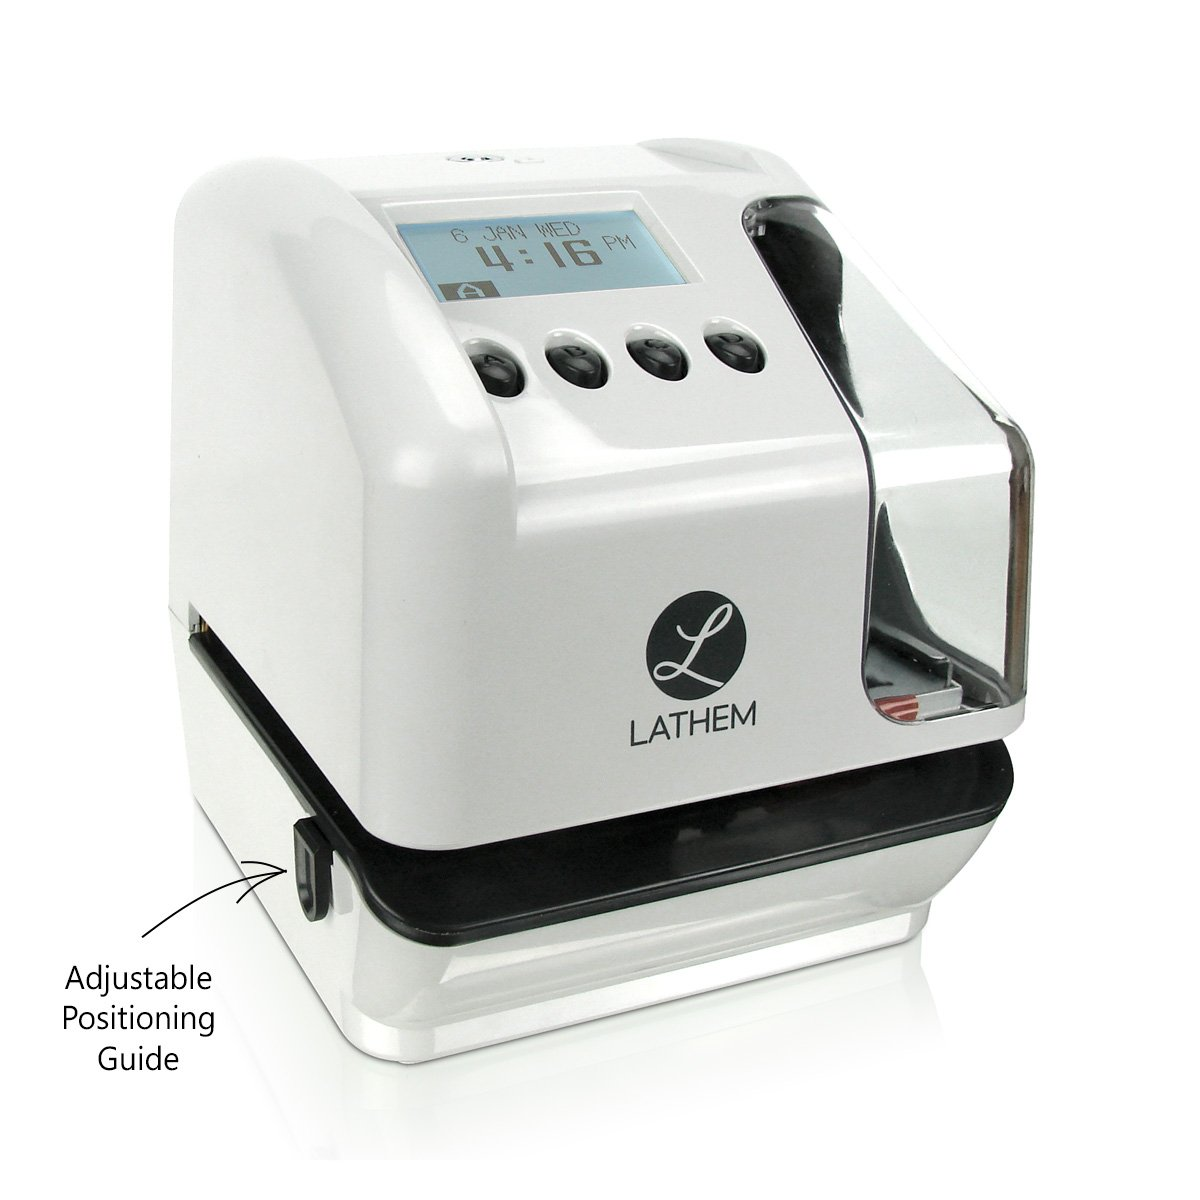 Lathem LT5000 Electronic Multi-Line Time, Date and Numbering Document Stamp, Can Be Wall Mounted (Screws Included) by Lathem (Image #3)